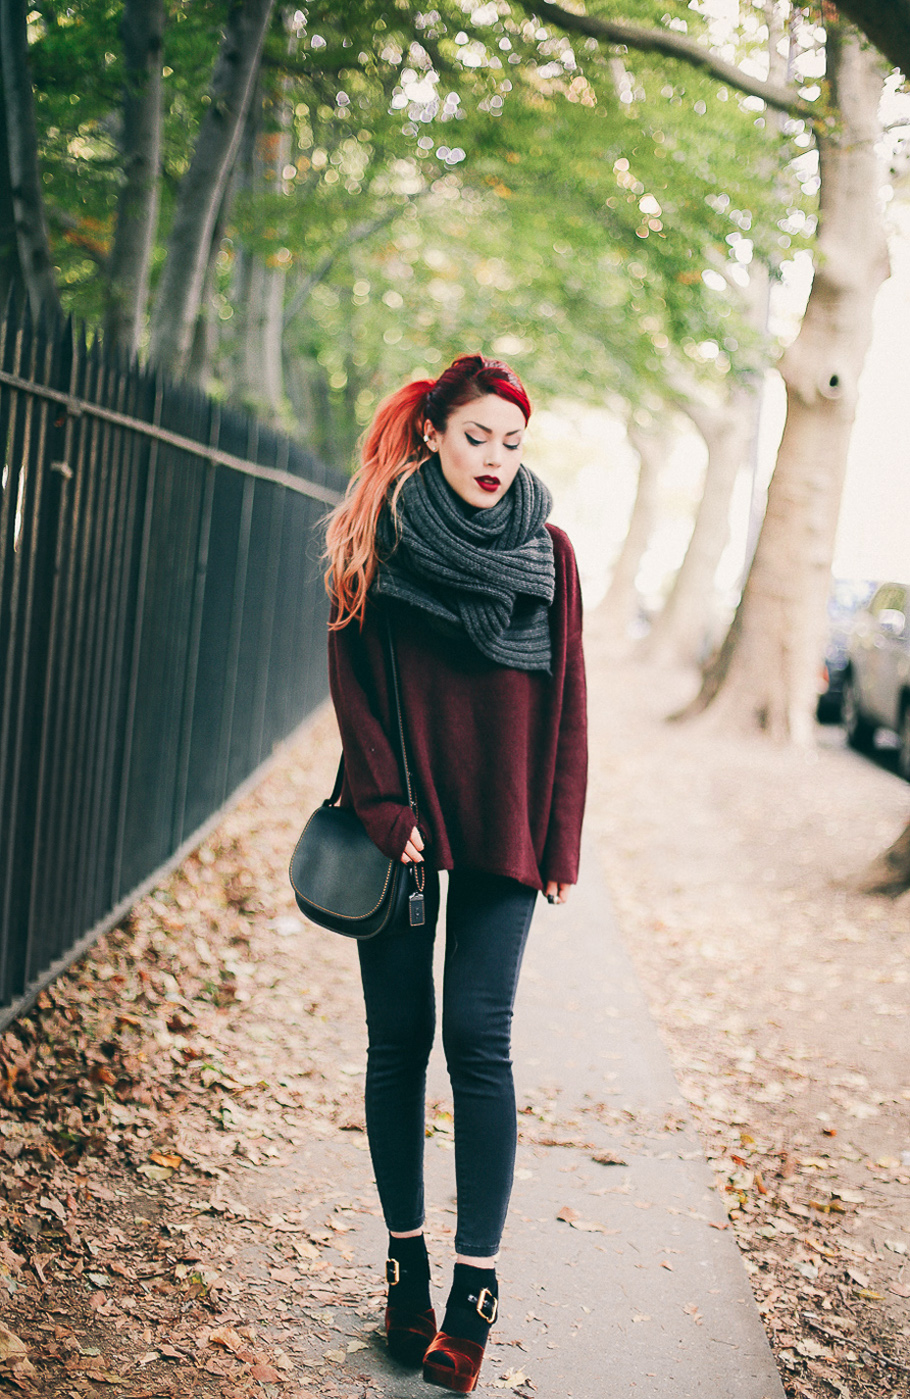 Le Happy wearing Coach 1941 crossbody bag and Vince burgundy sweater